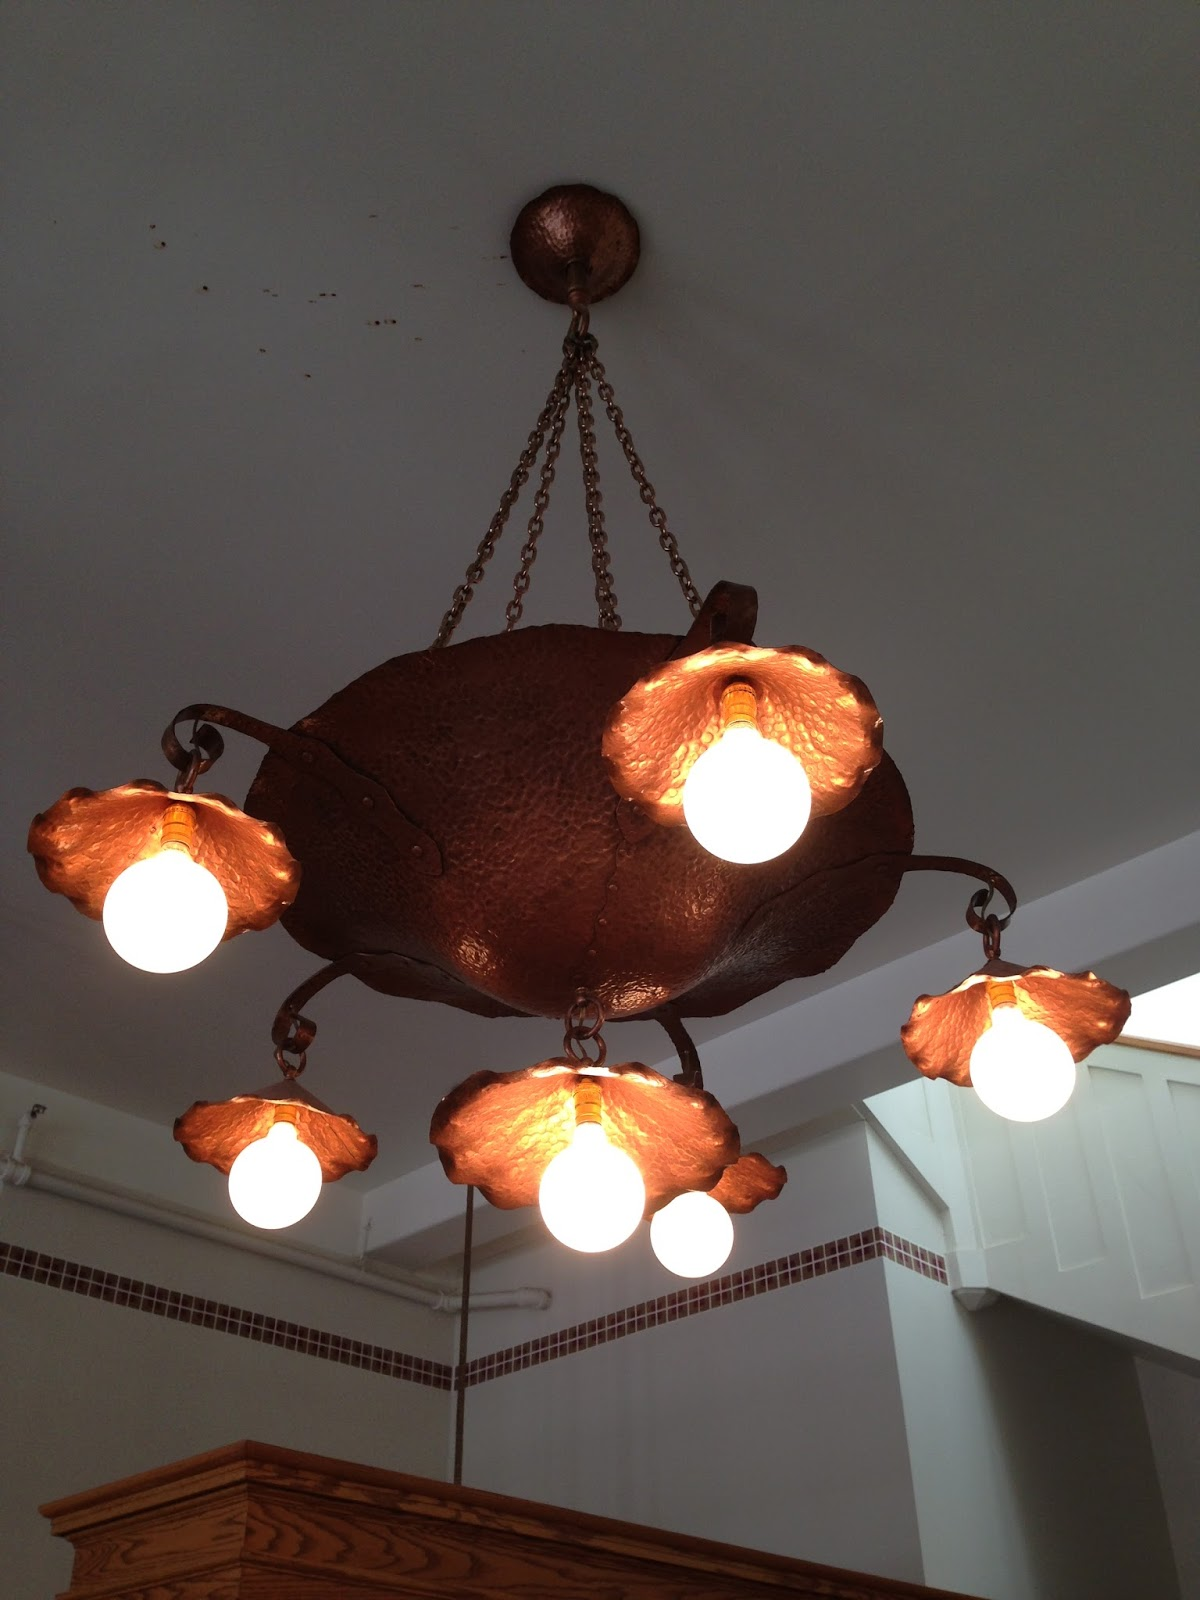 Visiting the harvey house in barstow ca la explorer arent these light fixtures amazing ive never seen anything like them before arubaitofo Image collections